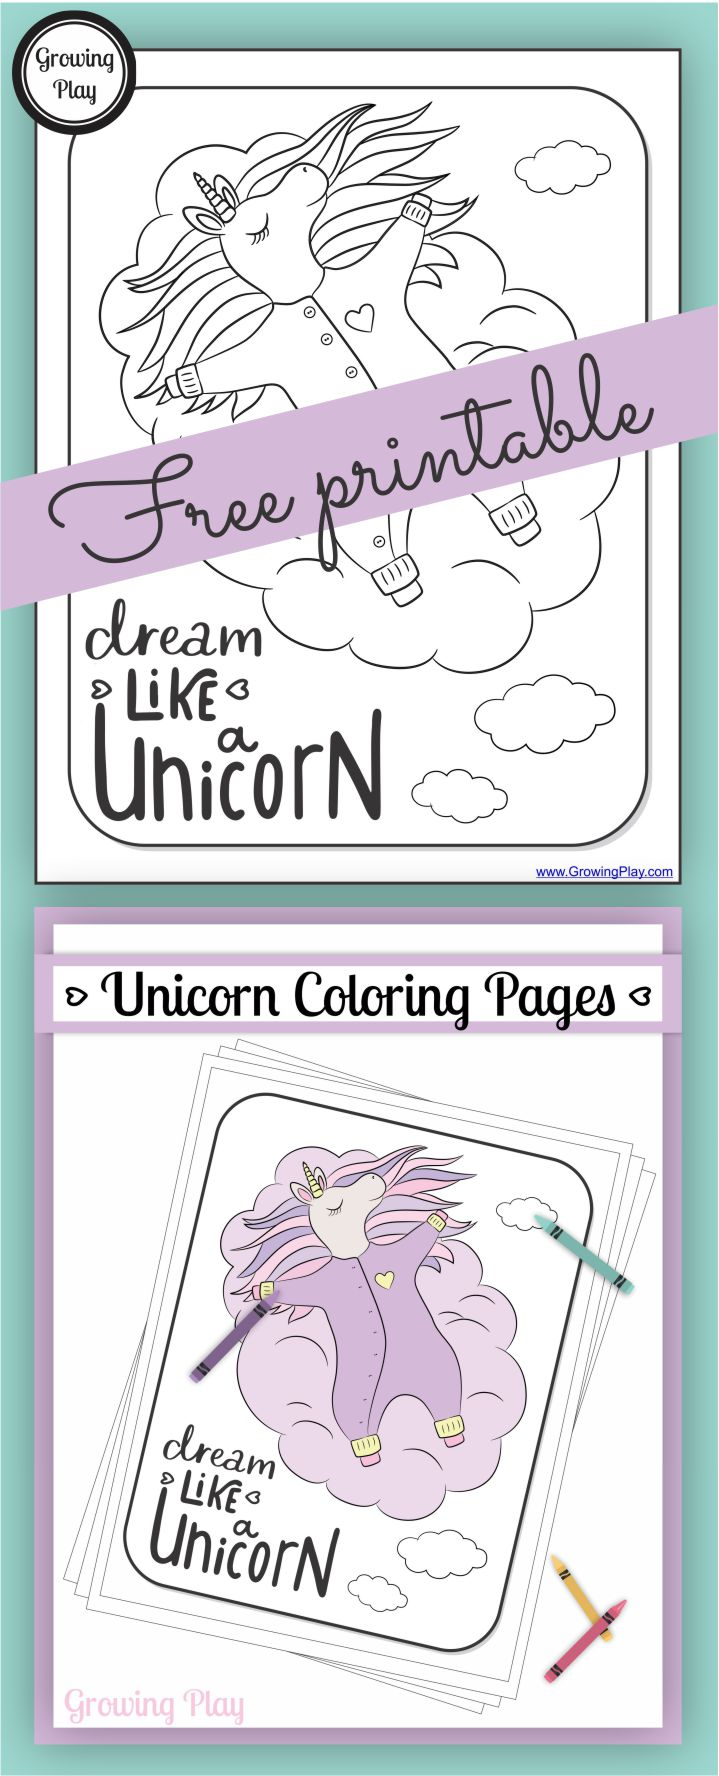 Do you love unicorns?  Check out this Dream like a unicorn coloring page freebie from the brand NEW Unicorn Coloring Book.  This coloring page is perfect for unicorn lovers who want to be creative and colorful.